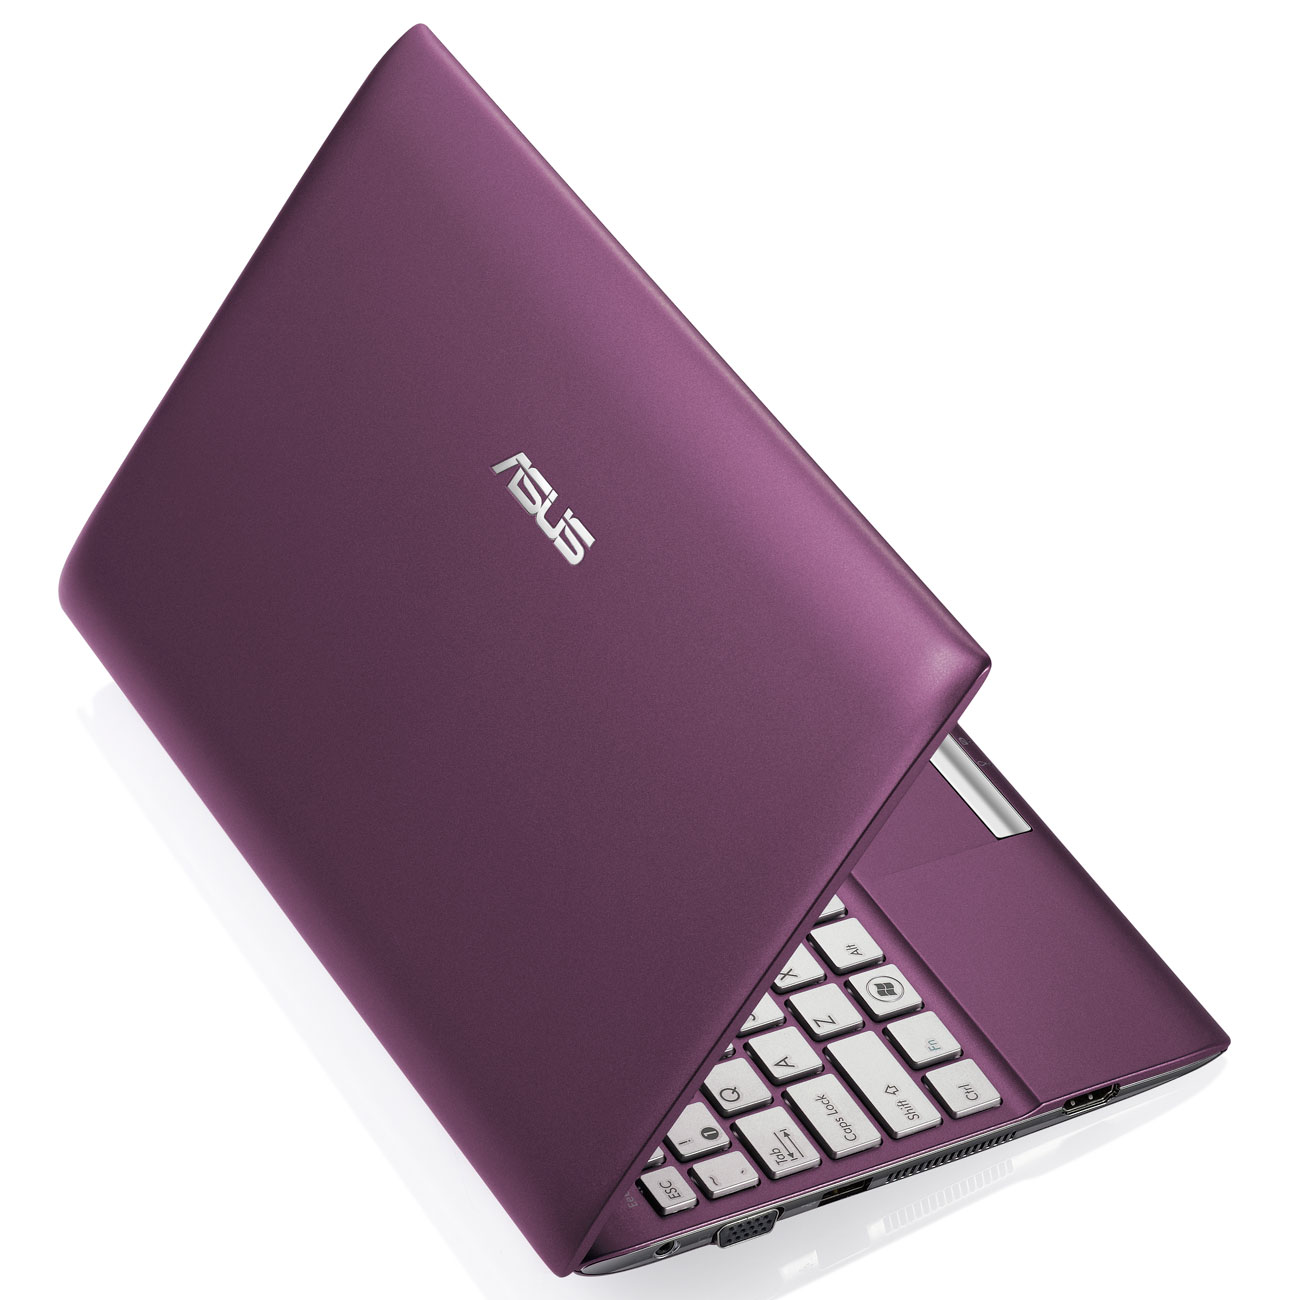 Asus Eee PC 1025CE-PUR015S